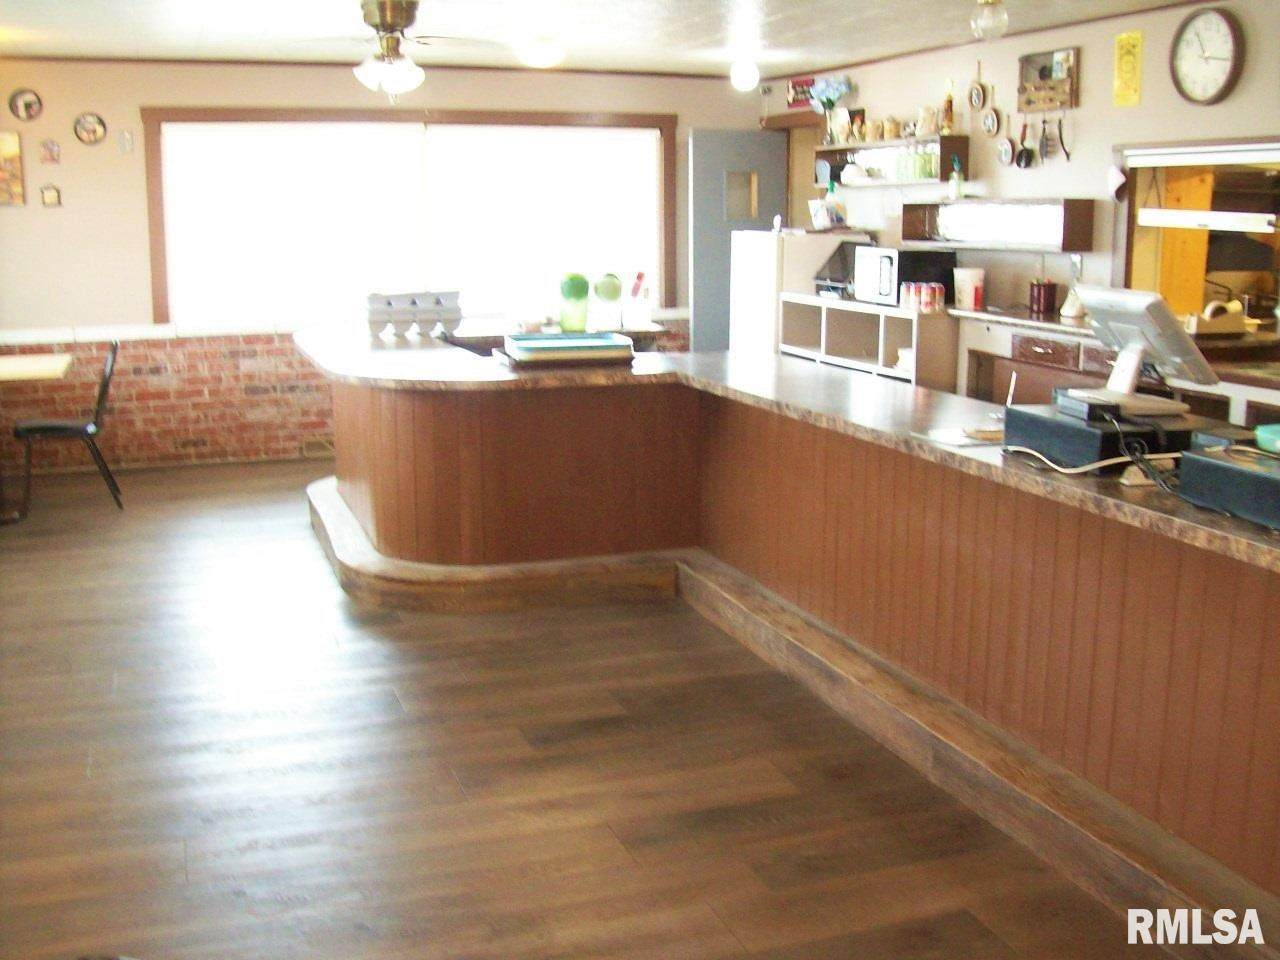 https://bt-photos.global.ssl.fastly.net/peoria/orig_boomver_1_1249536-2.jpg